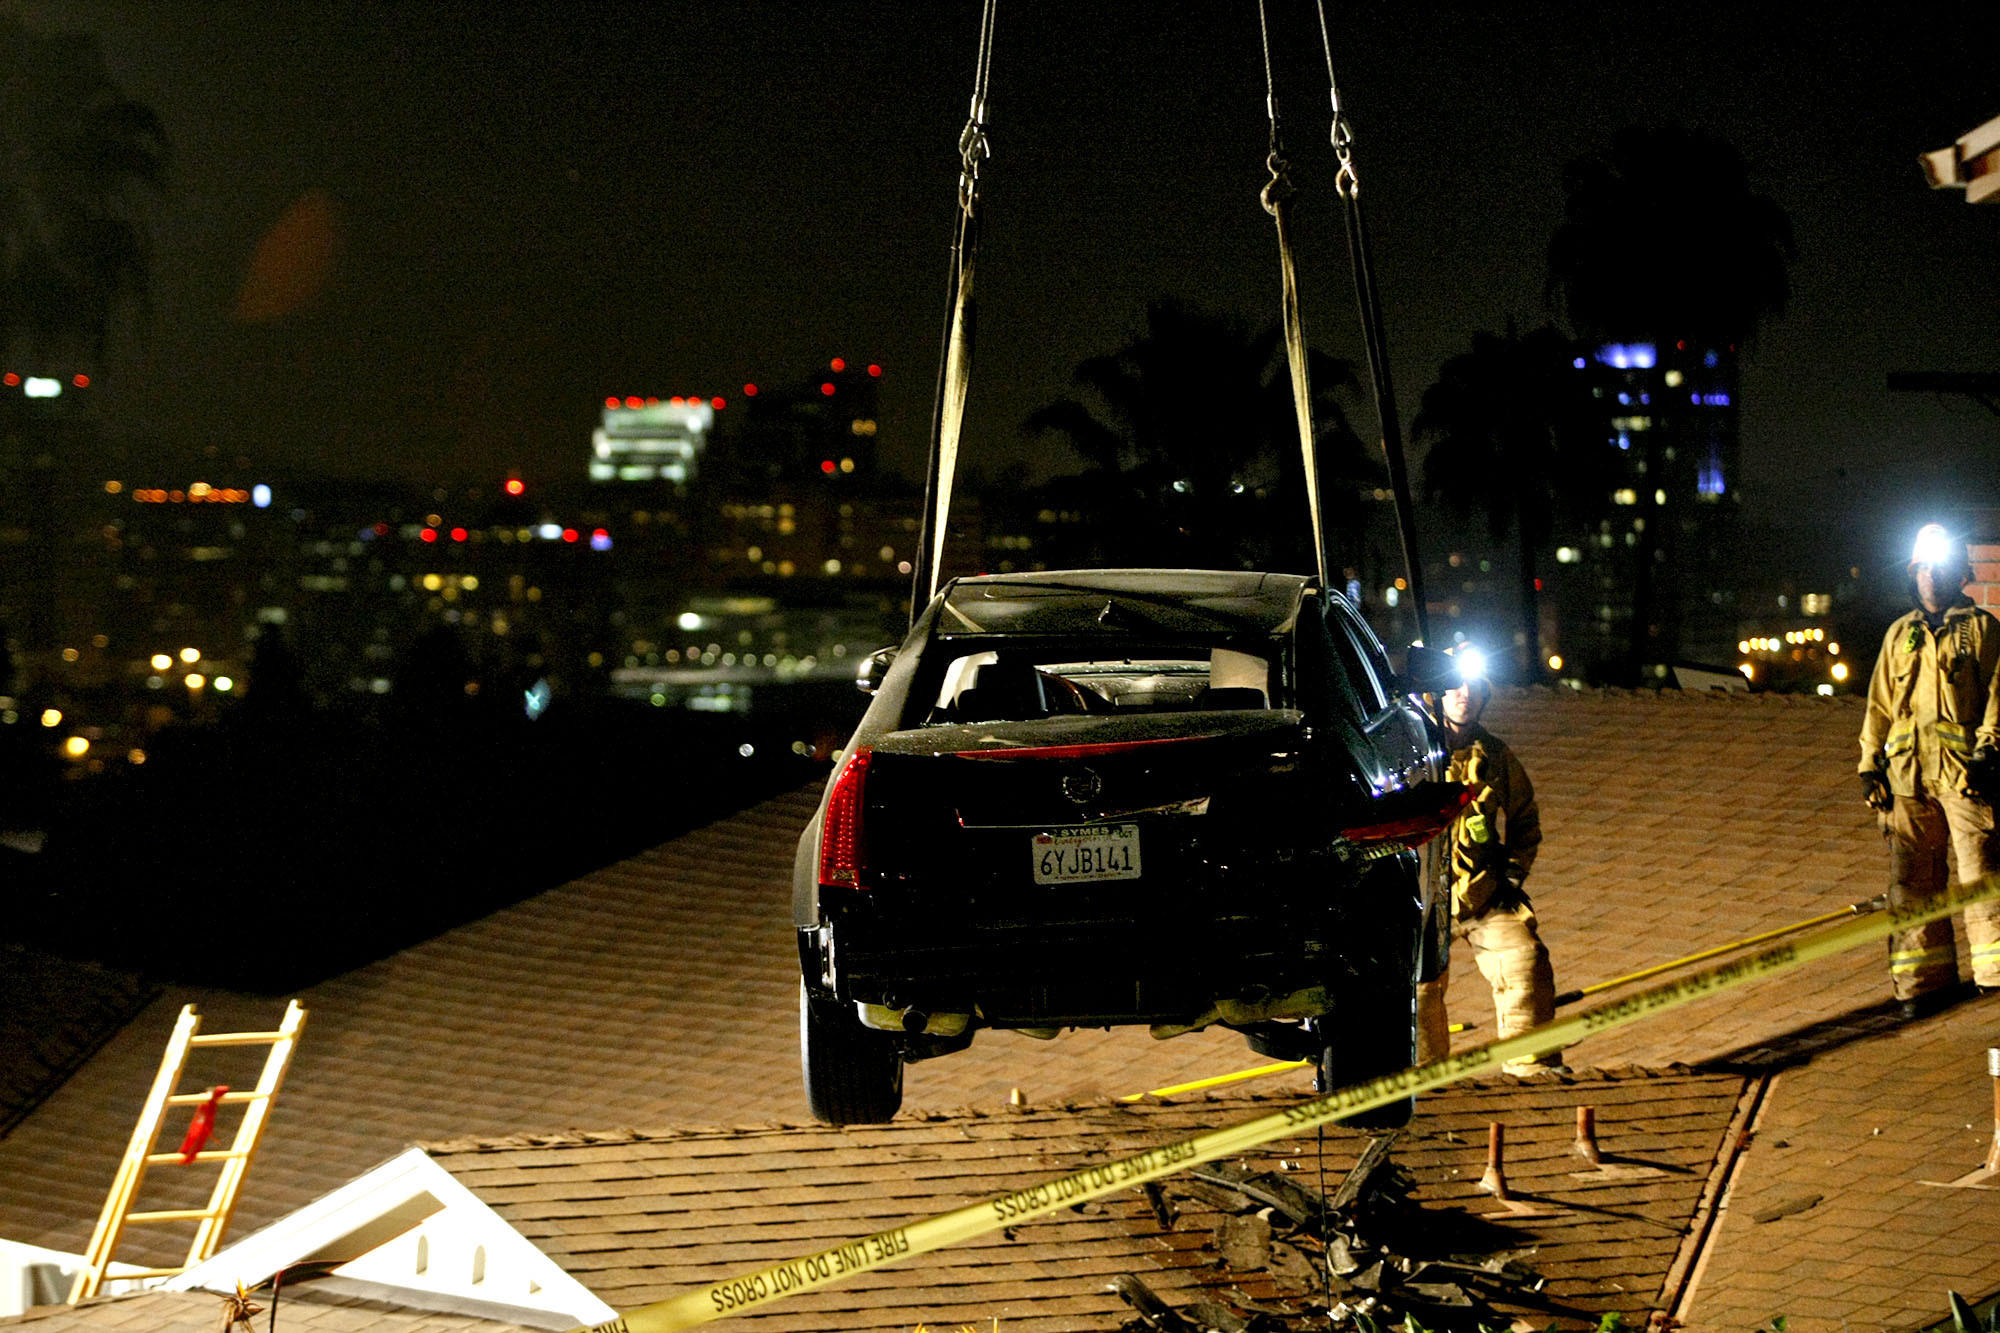 A car is removed by crane from the roof of a home on the 400 block of Audraine Dr. in Glendale on Saturday, March 23, 2013. The driver told police he lost his brakes. The car went onto a neighbor's lawn and launched off onto the roof of the lower house down the street.